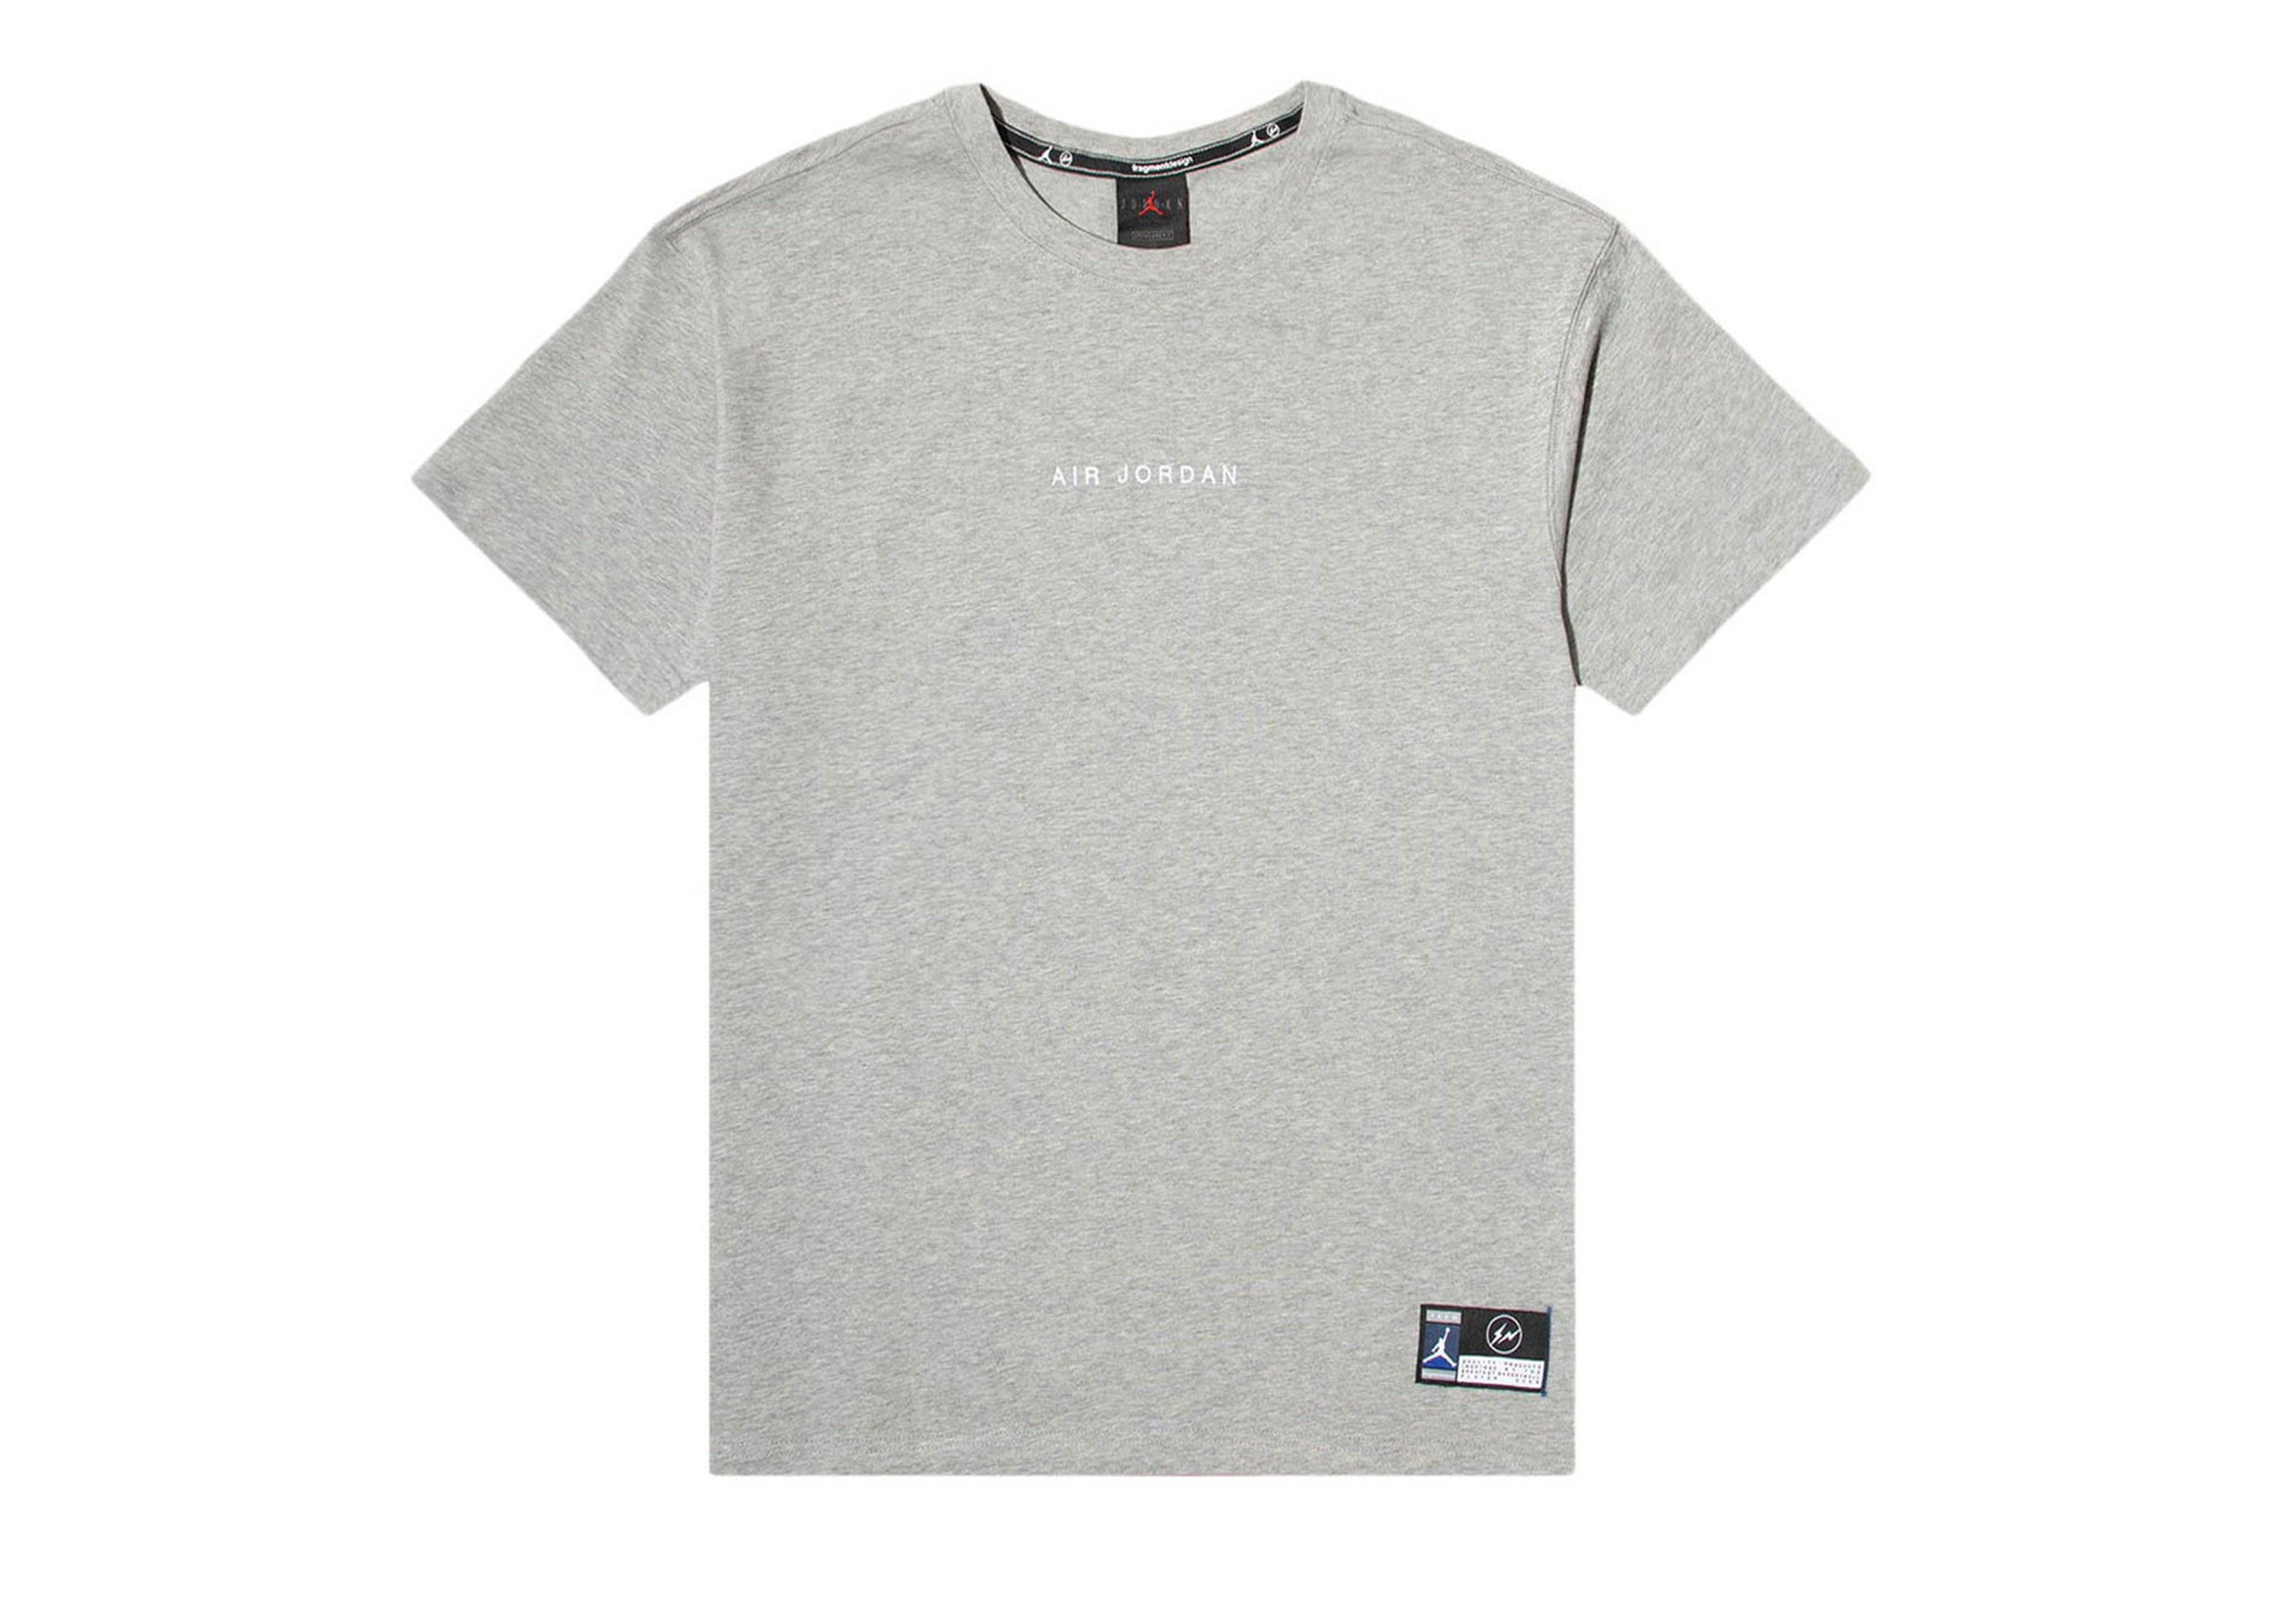 FRAGMENT_APPAREL__0001_Jordan_Fragment_Apparel_0000_frag tee 4